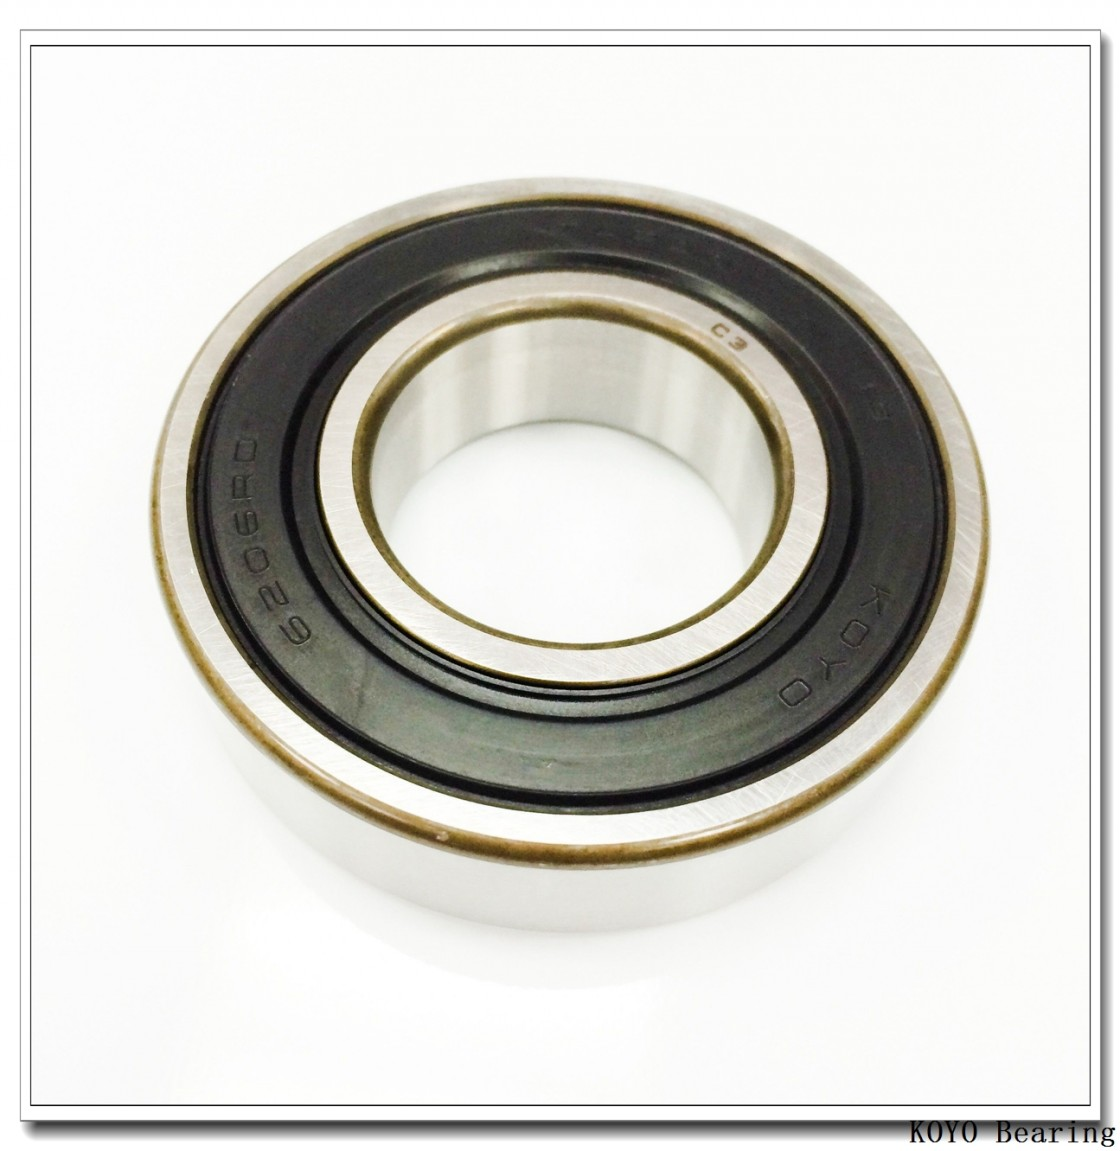 KOYO AX 12 170 215 needle roller bearings